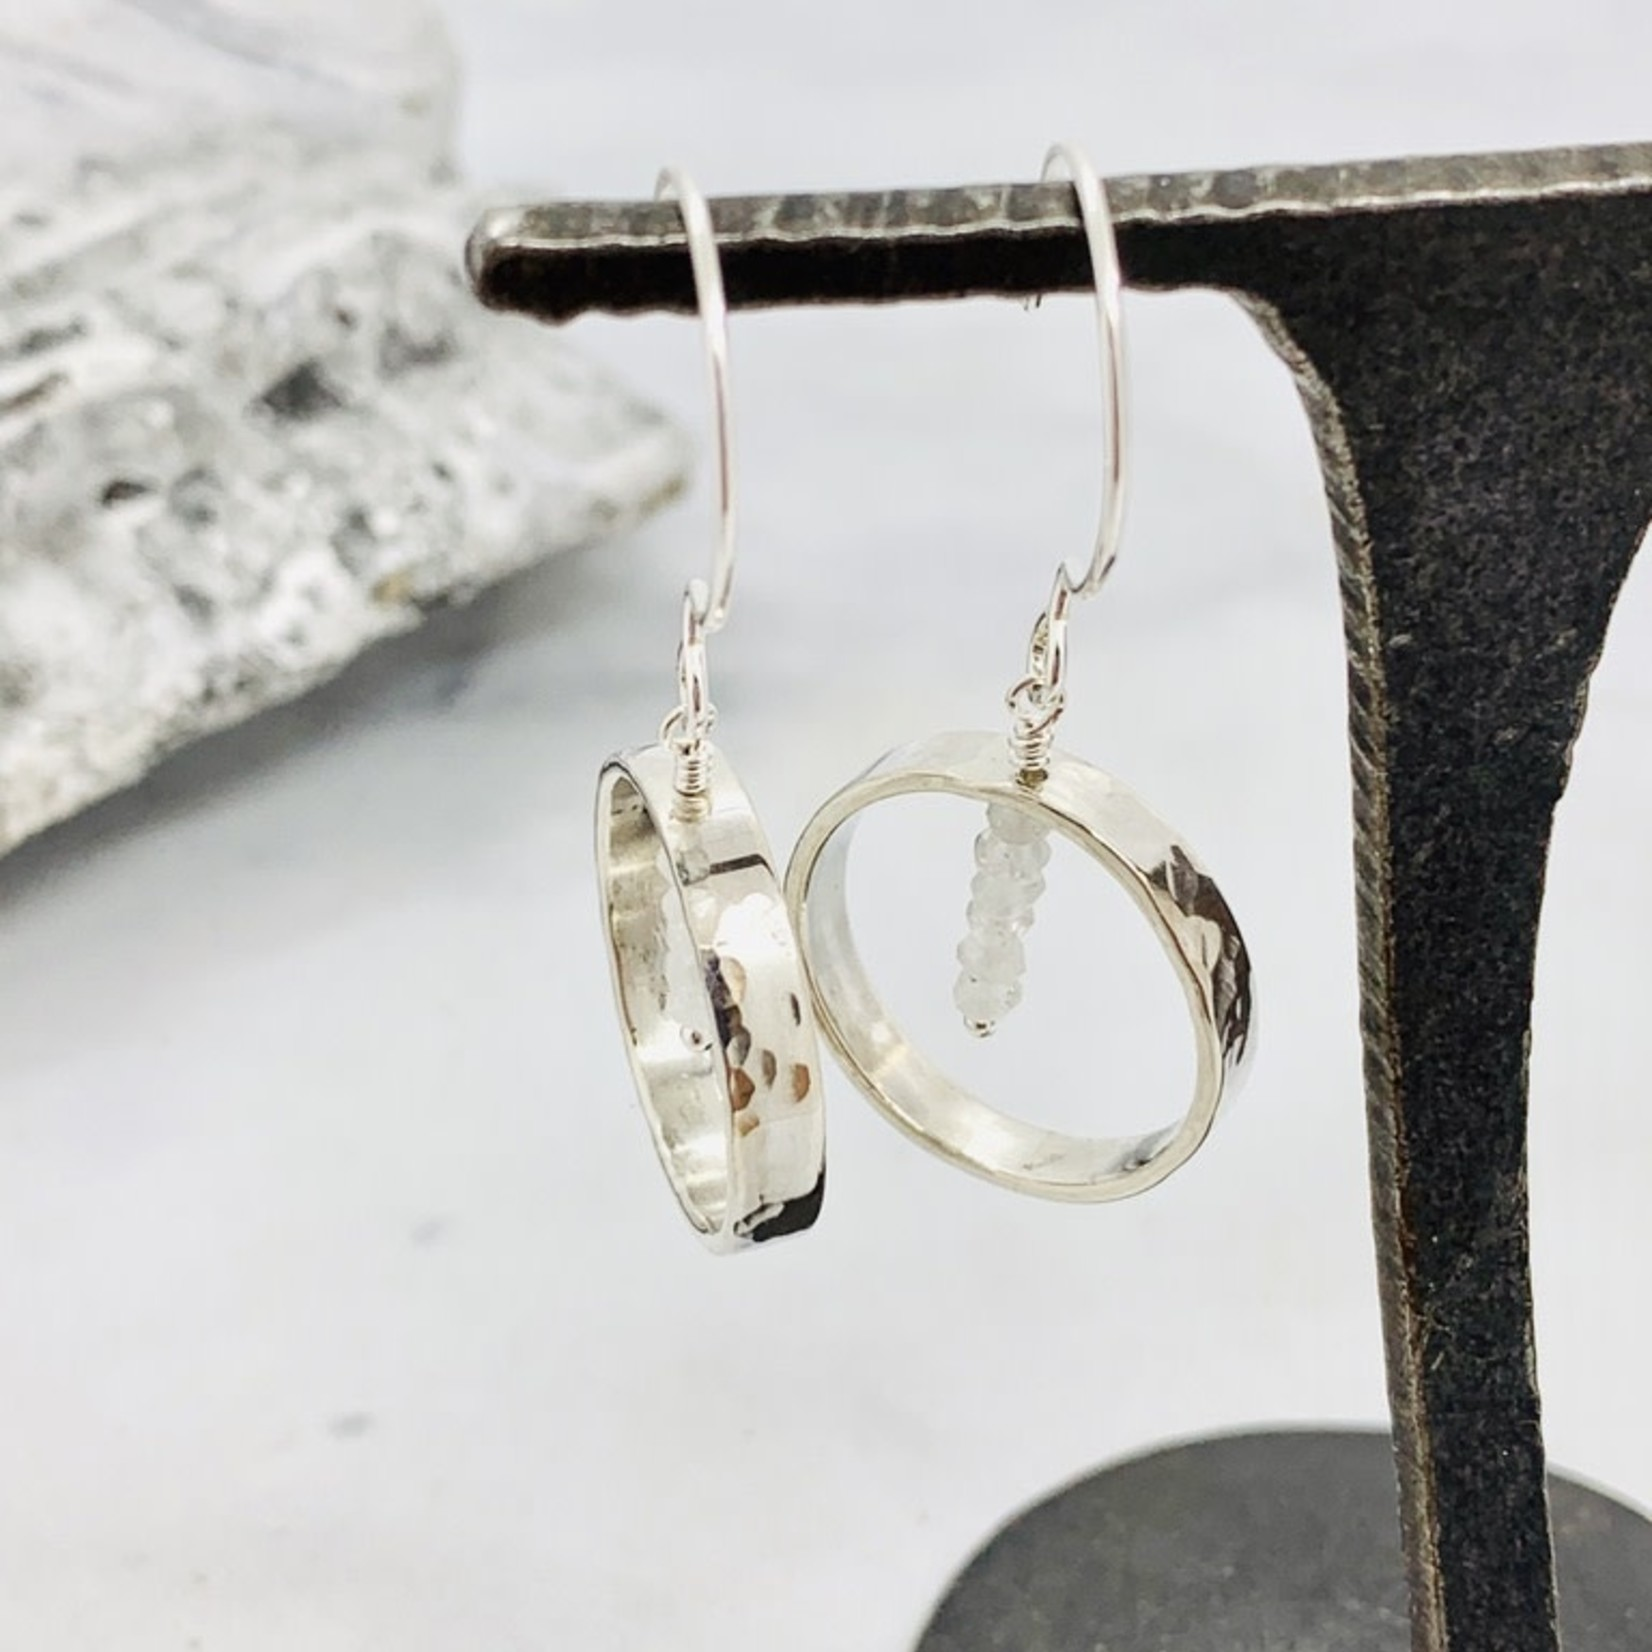 Handmade earrings with hammered ring, stack 6 rainbow moonstone